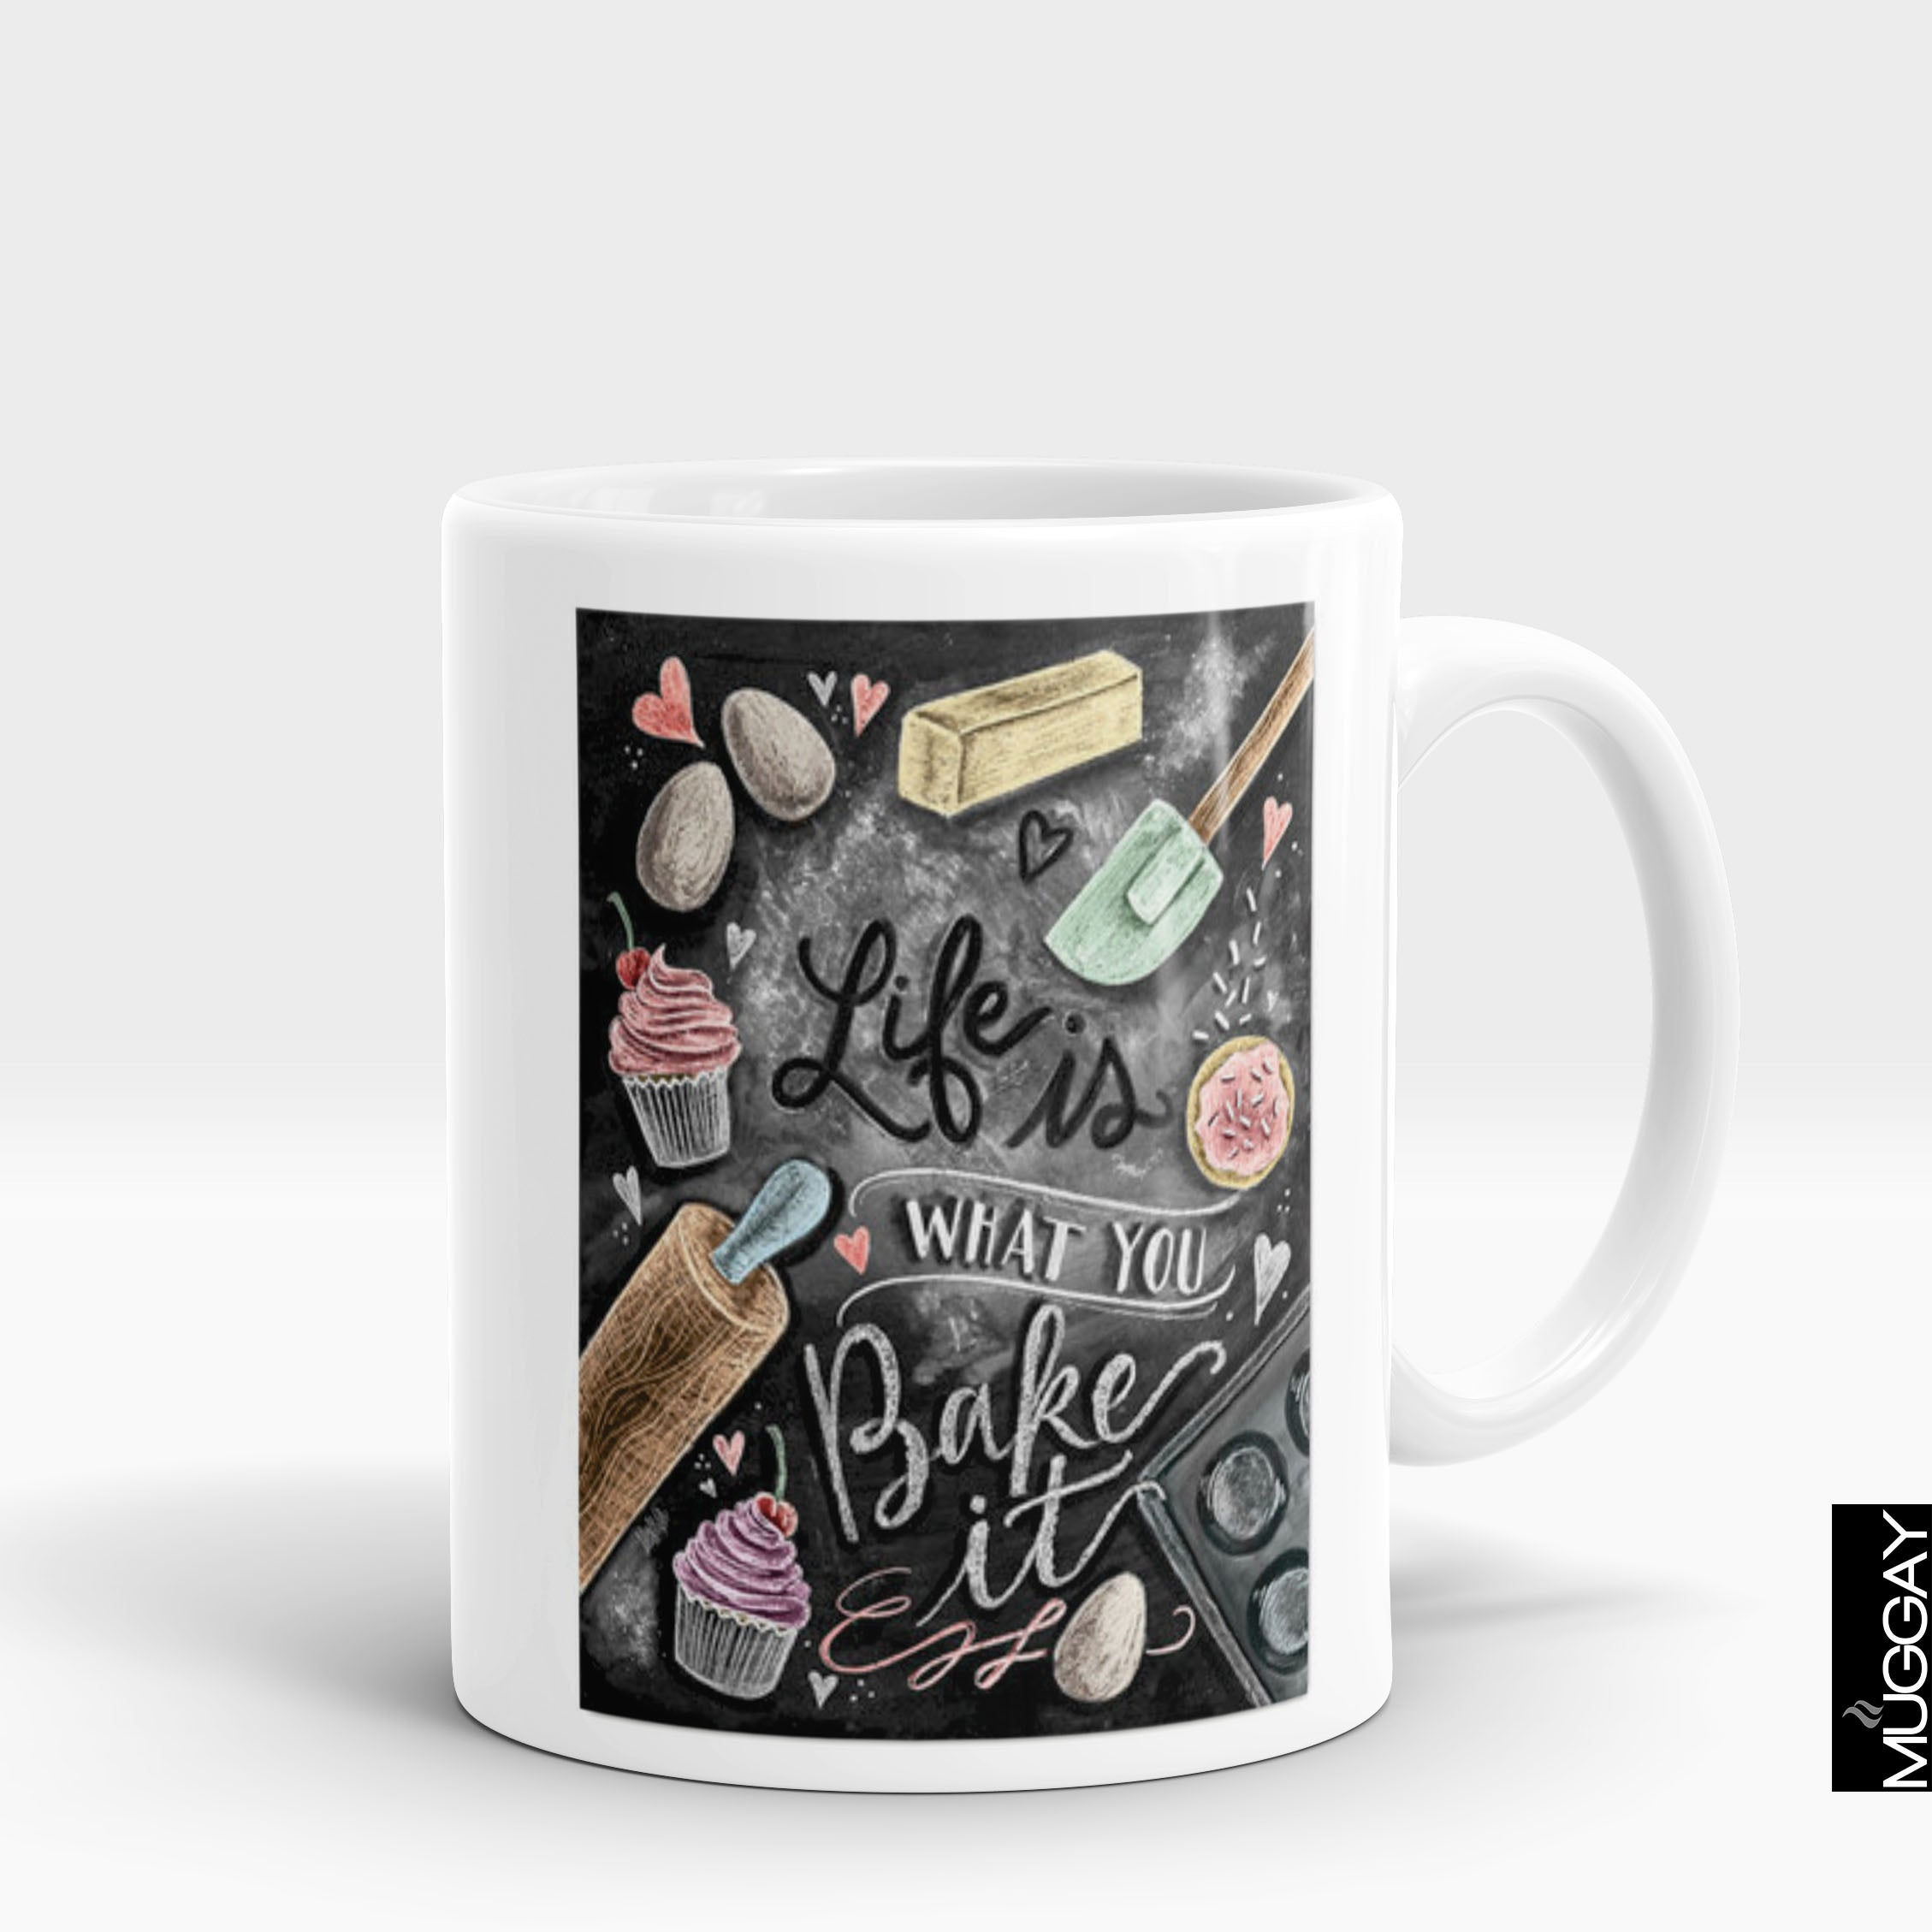 Baking Mug - bkr6 - Muggay.com - Mugs - Printing shop - truck Art mugs - Mug printing - Customized printing - Digital printing - Muggay